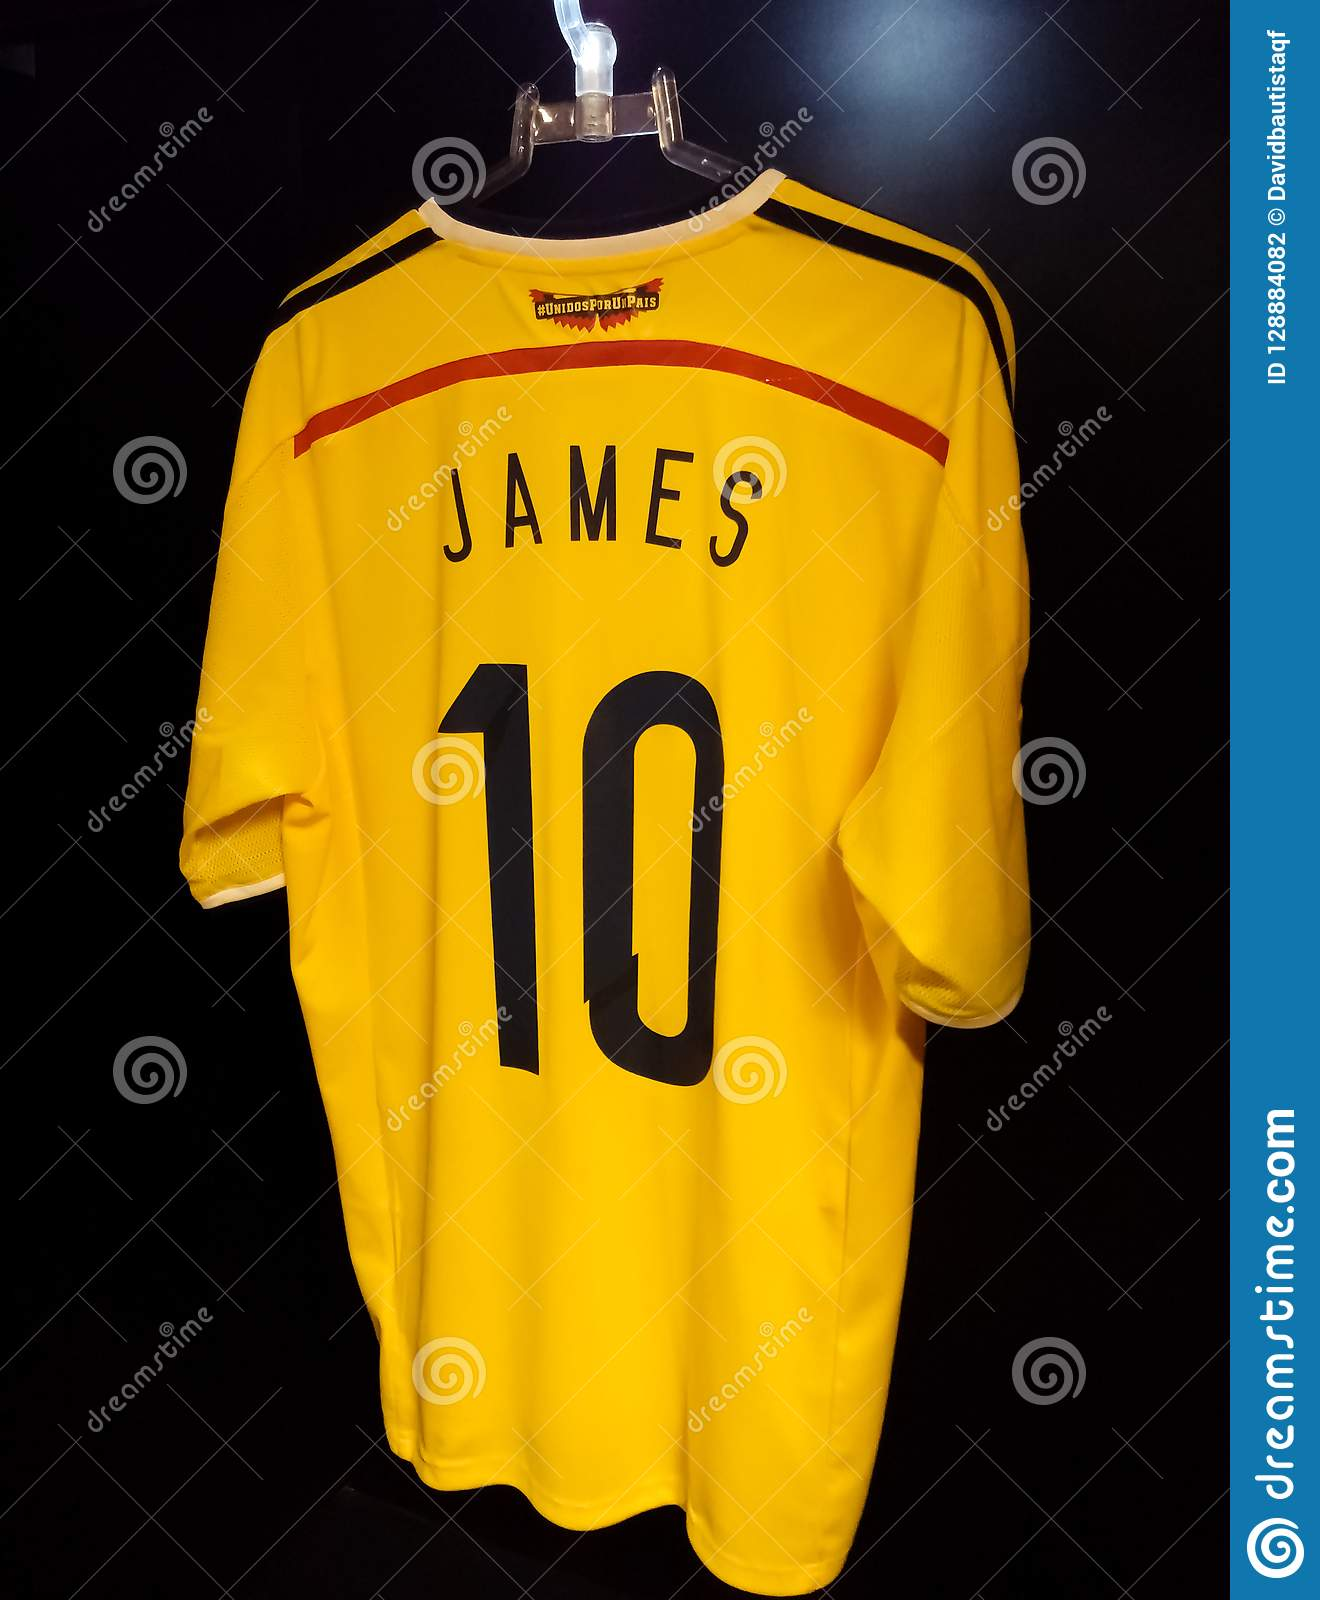 new style 7eabc 1795f Shirt Of The Colombian Soccer National Team. 10, James ...